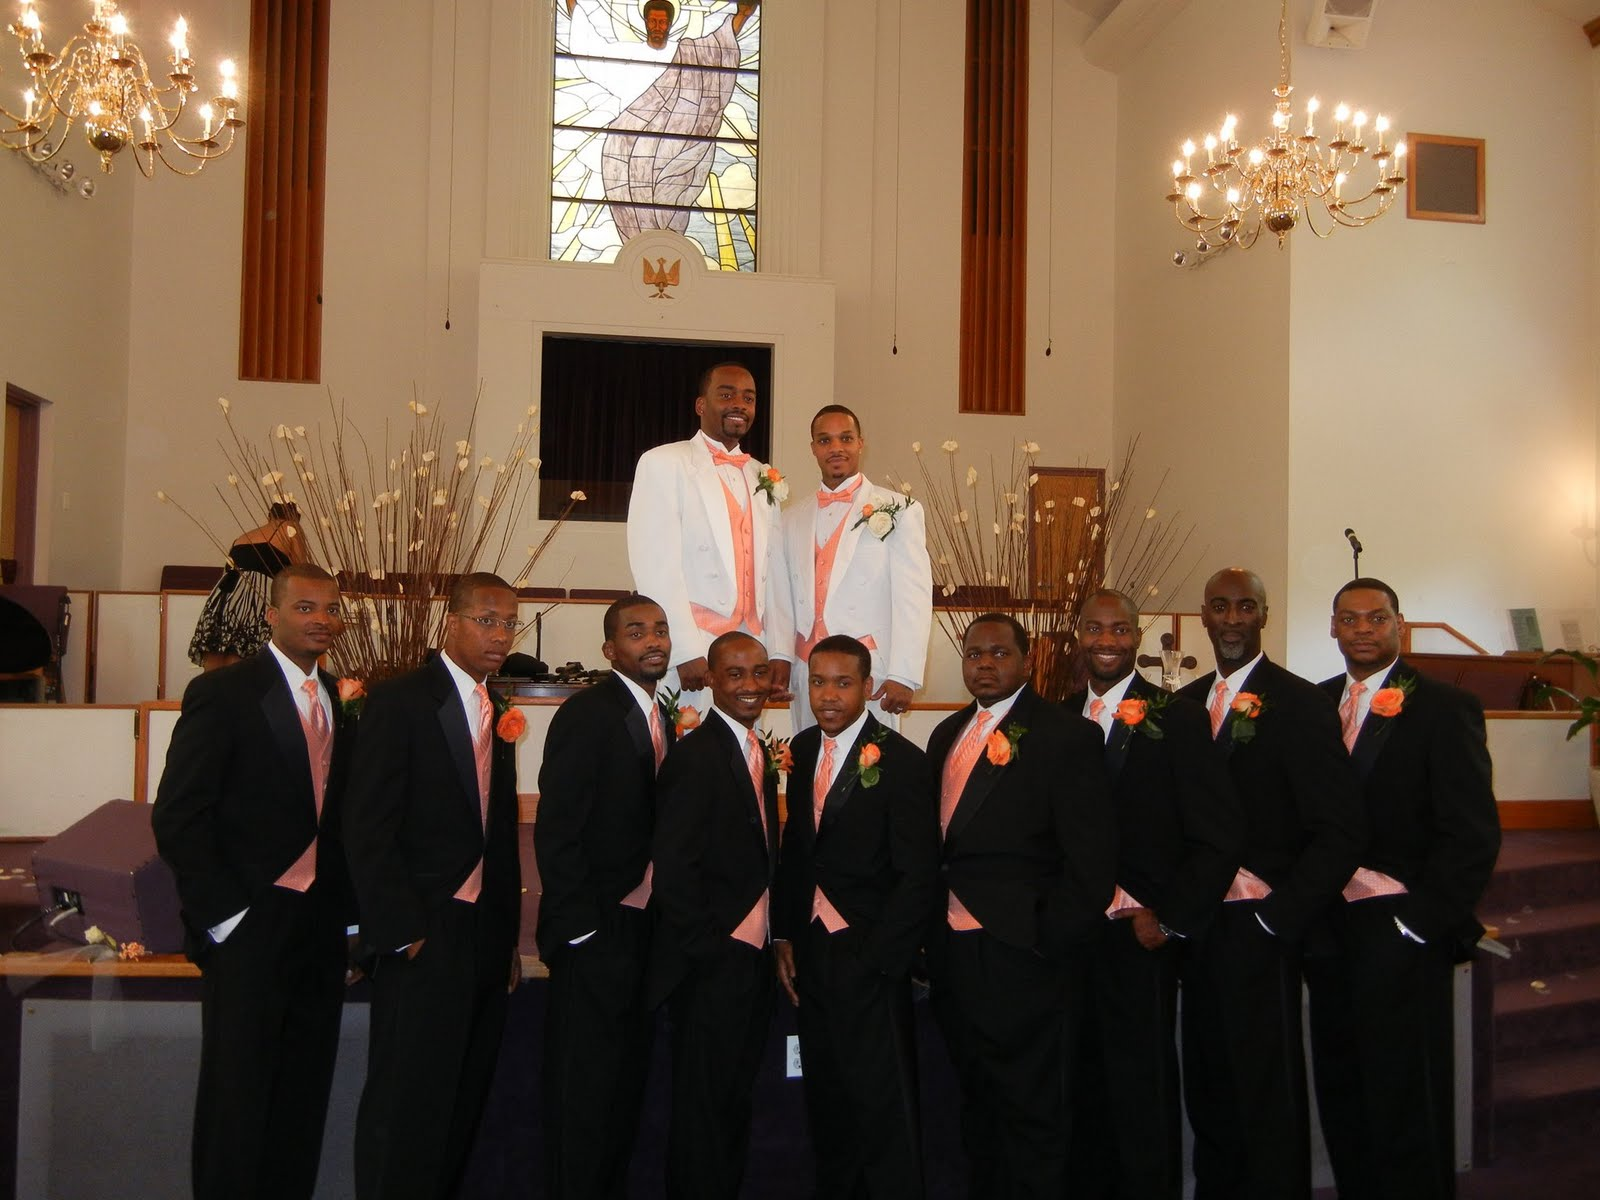 living out loud darian watch rev aaron wade job jones this is another example of the diversity and acceptance of lgbt people in the black community that is rarely on display and a side of black love that